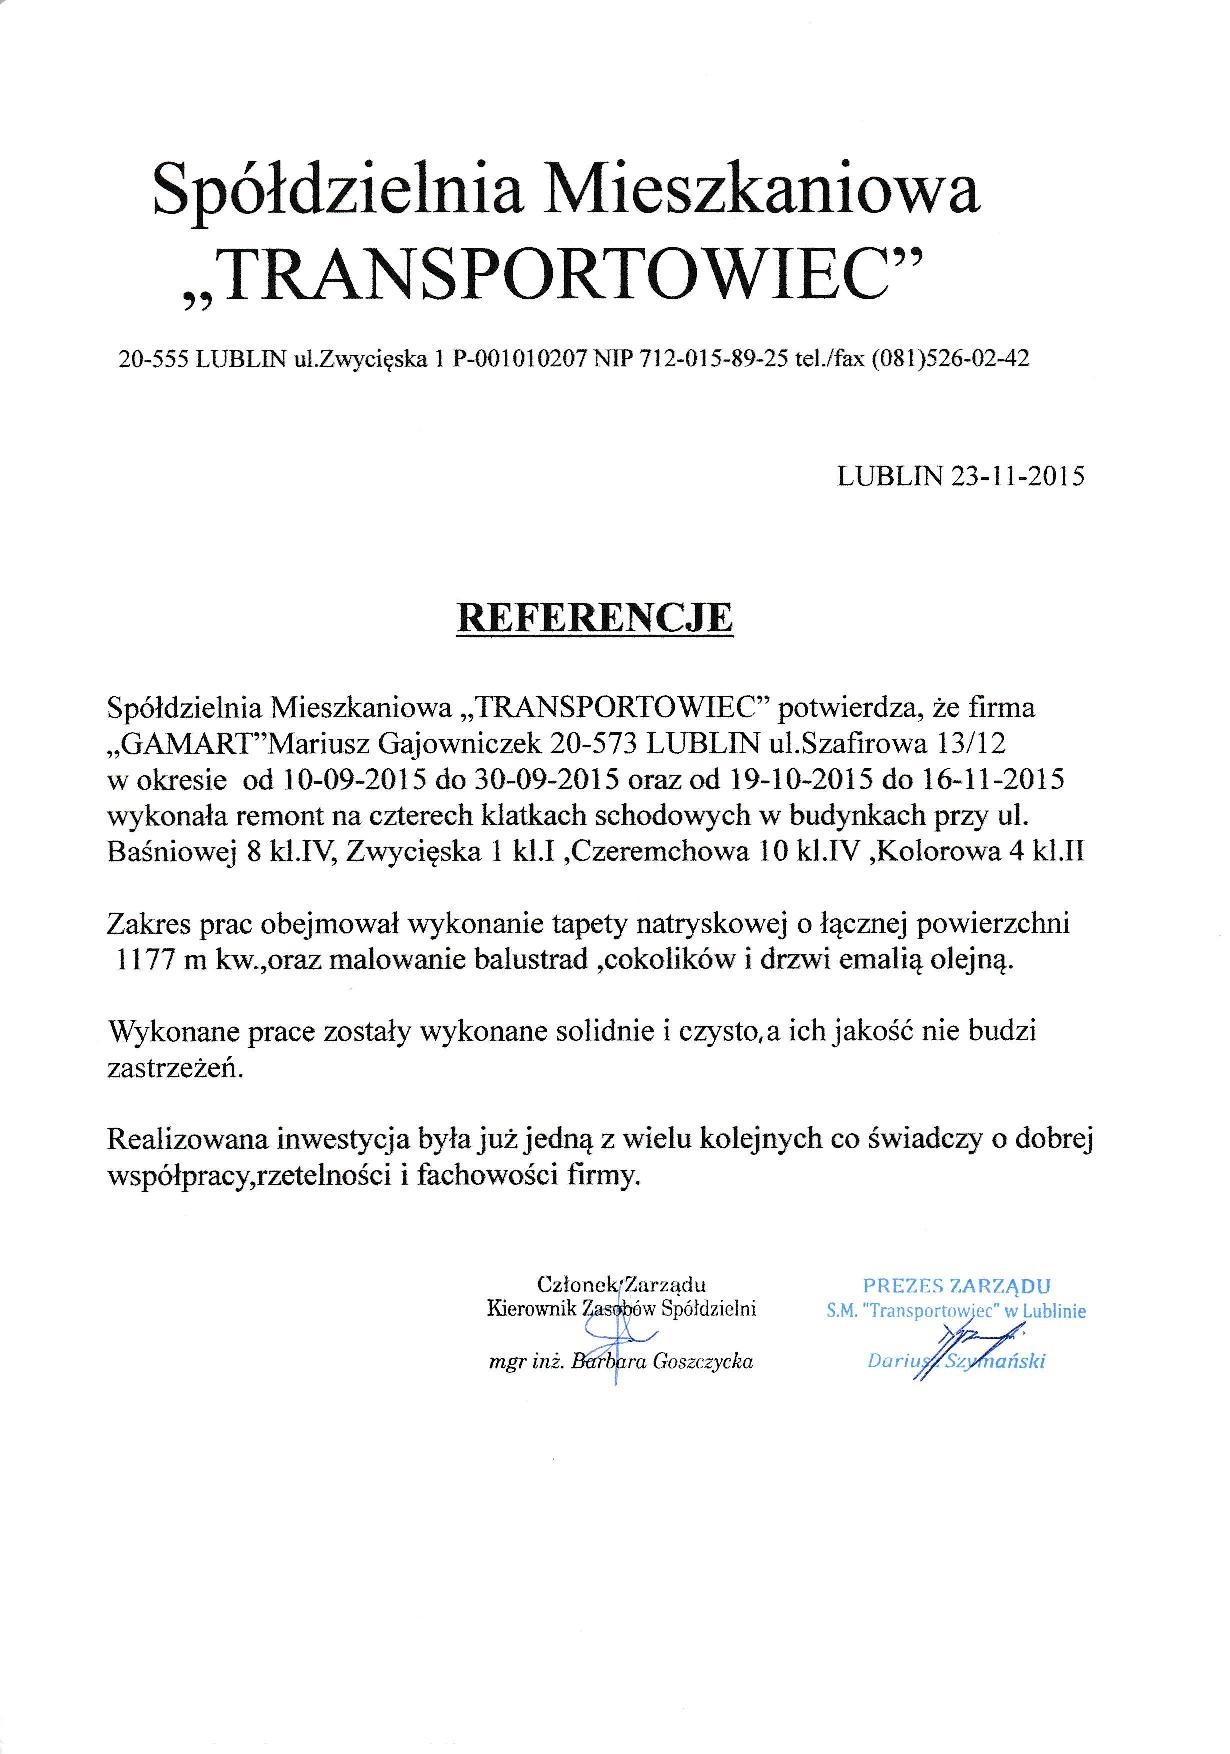 referencje Transportowiec 2015-page-001